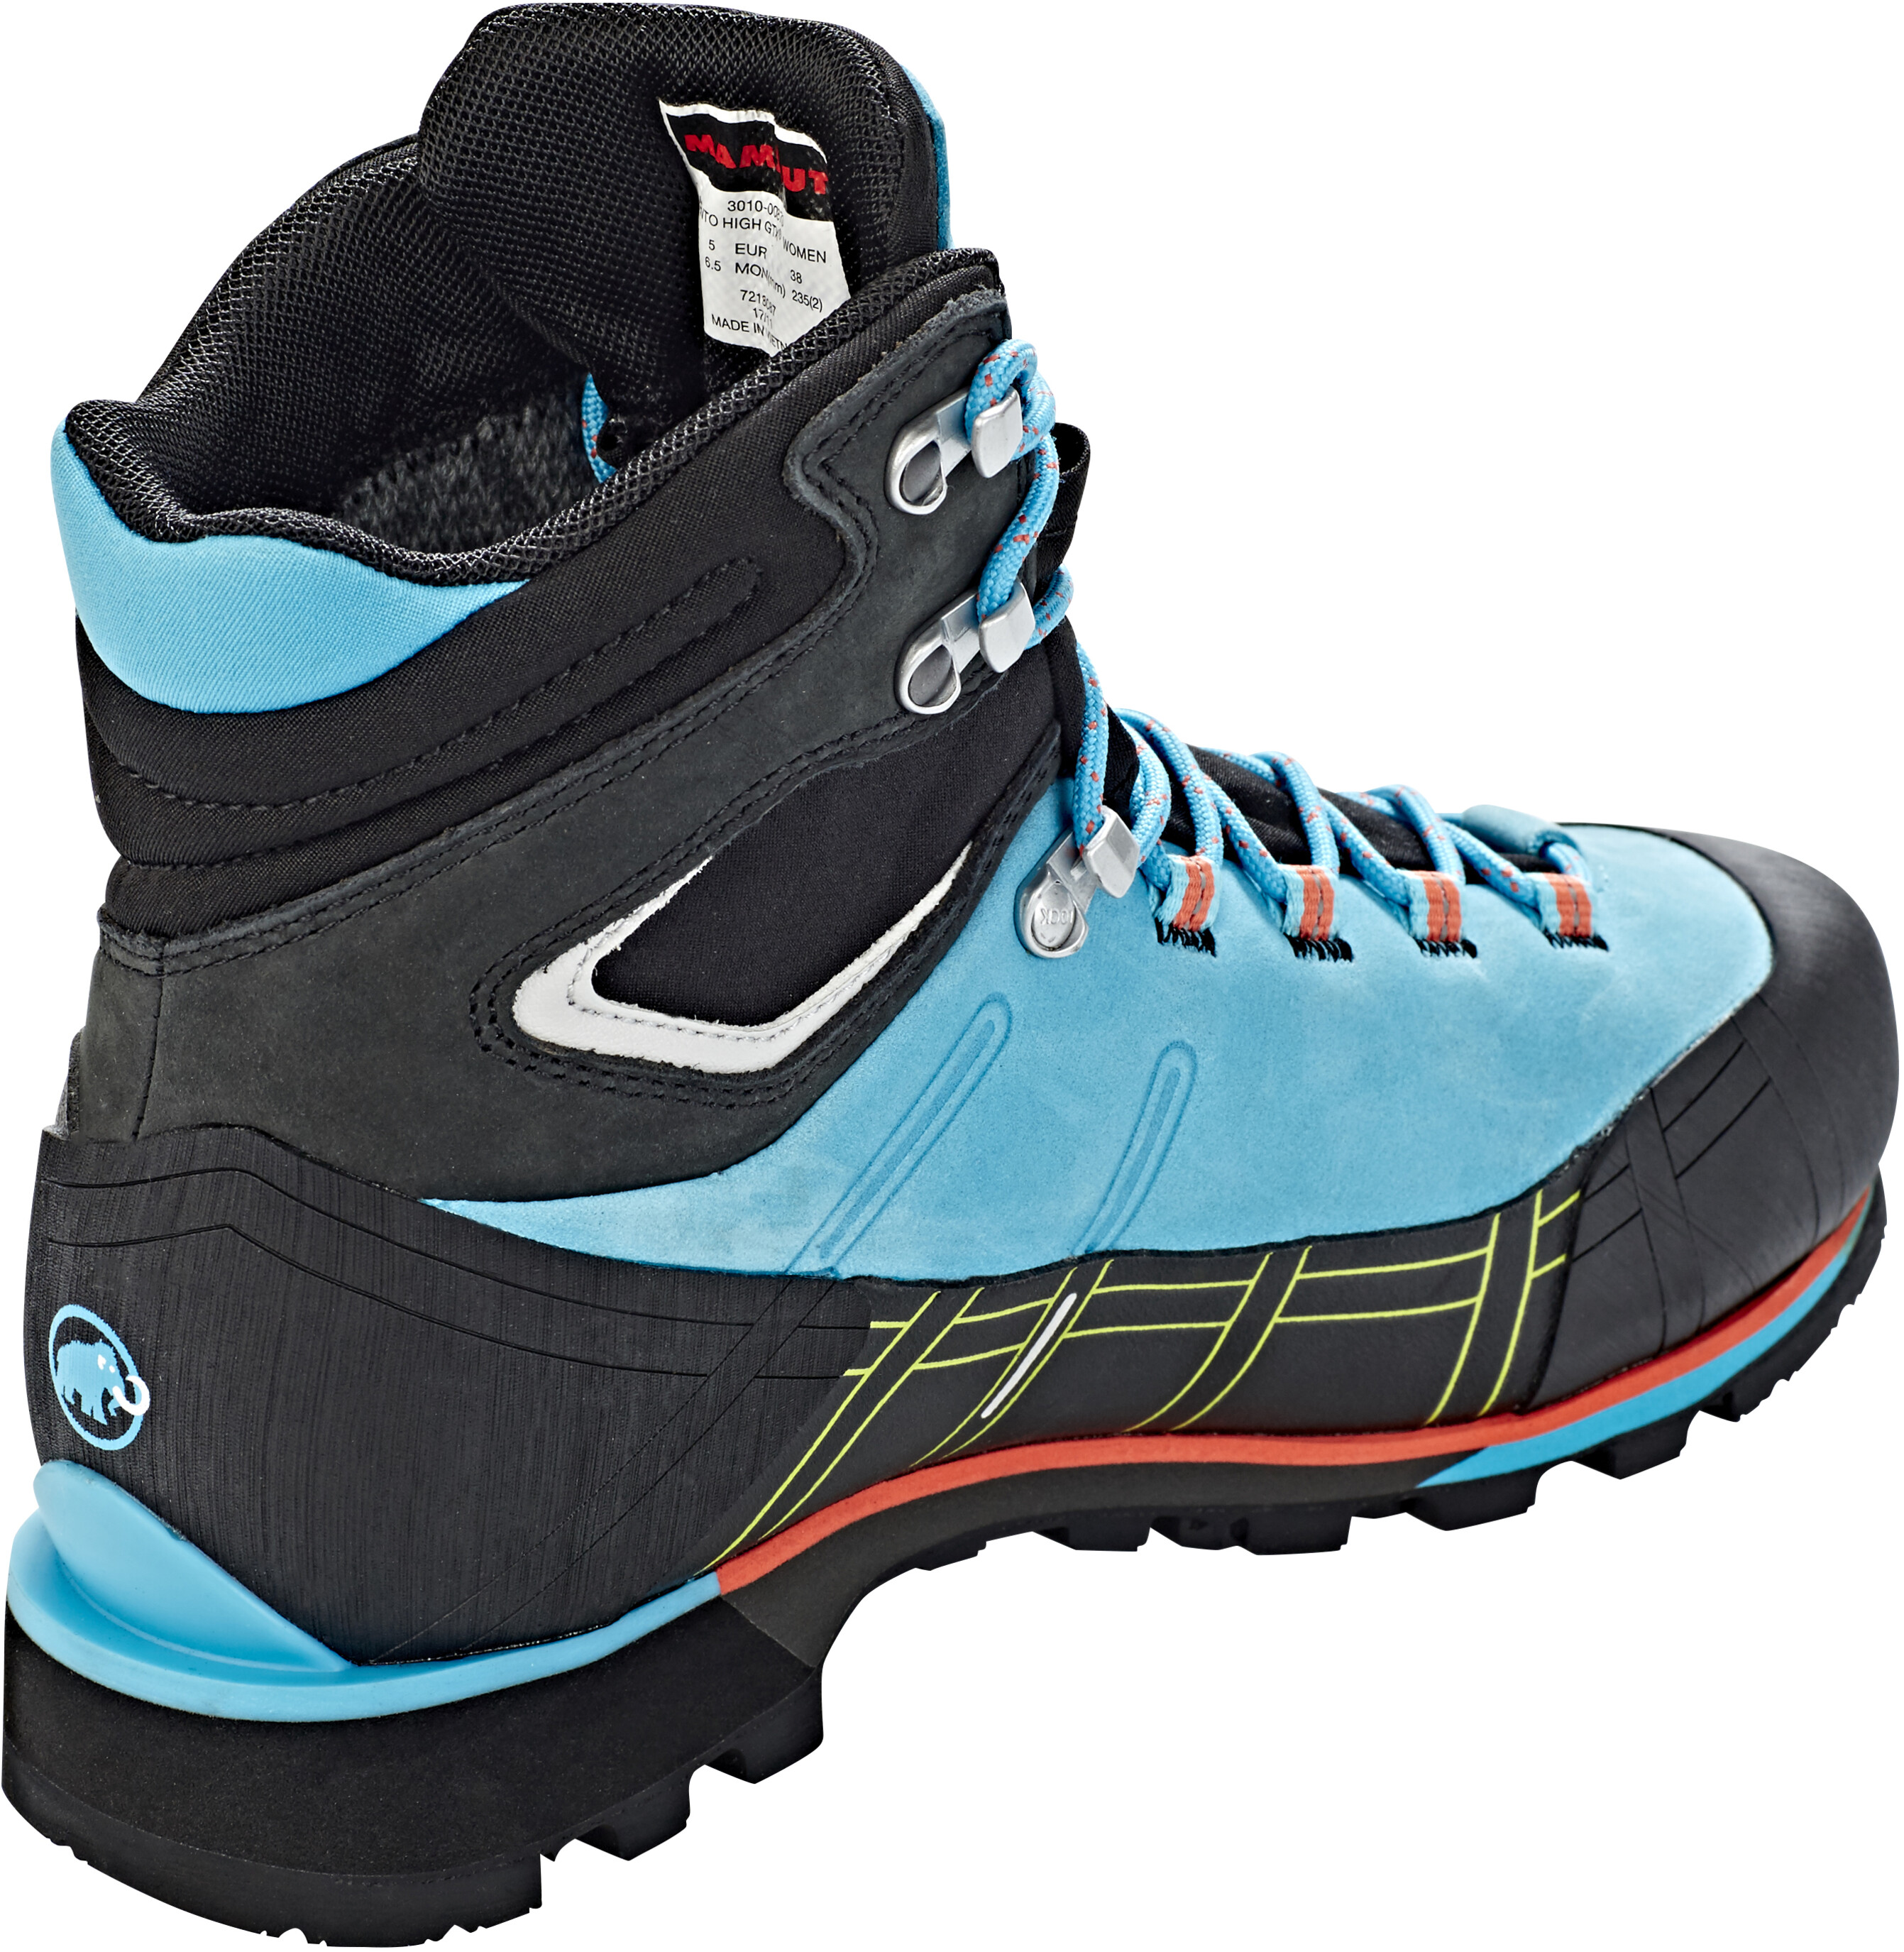 9245e926090 Mammut Kento High GTX Shoes Women arctic-black